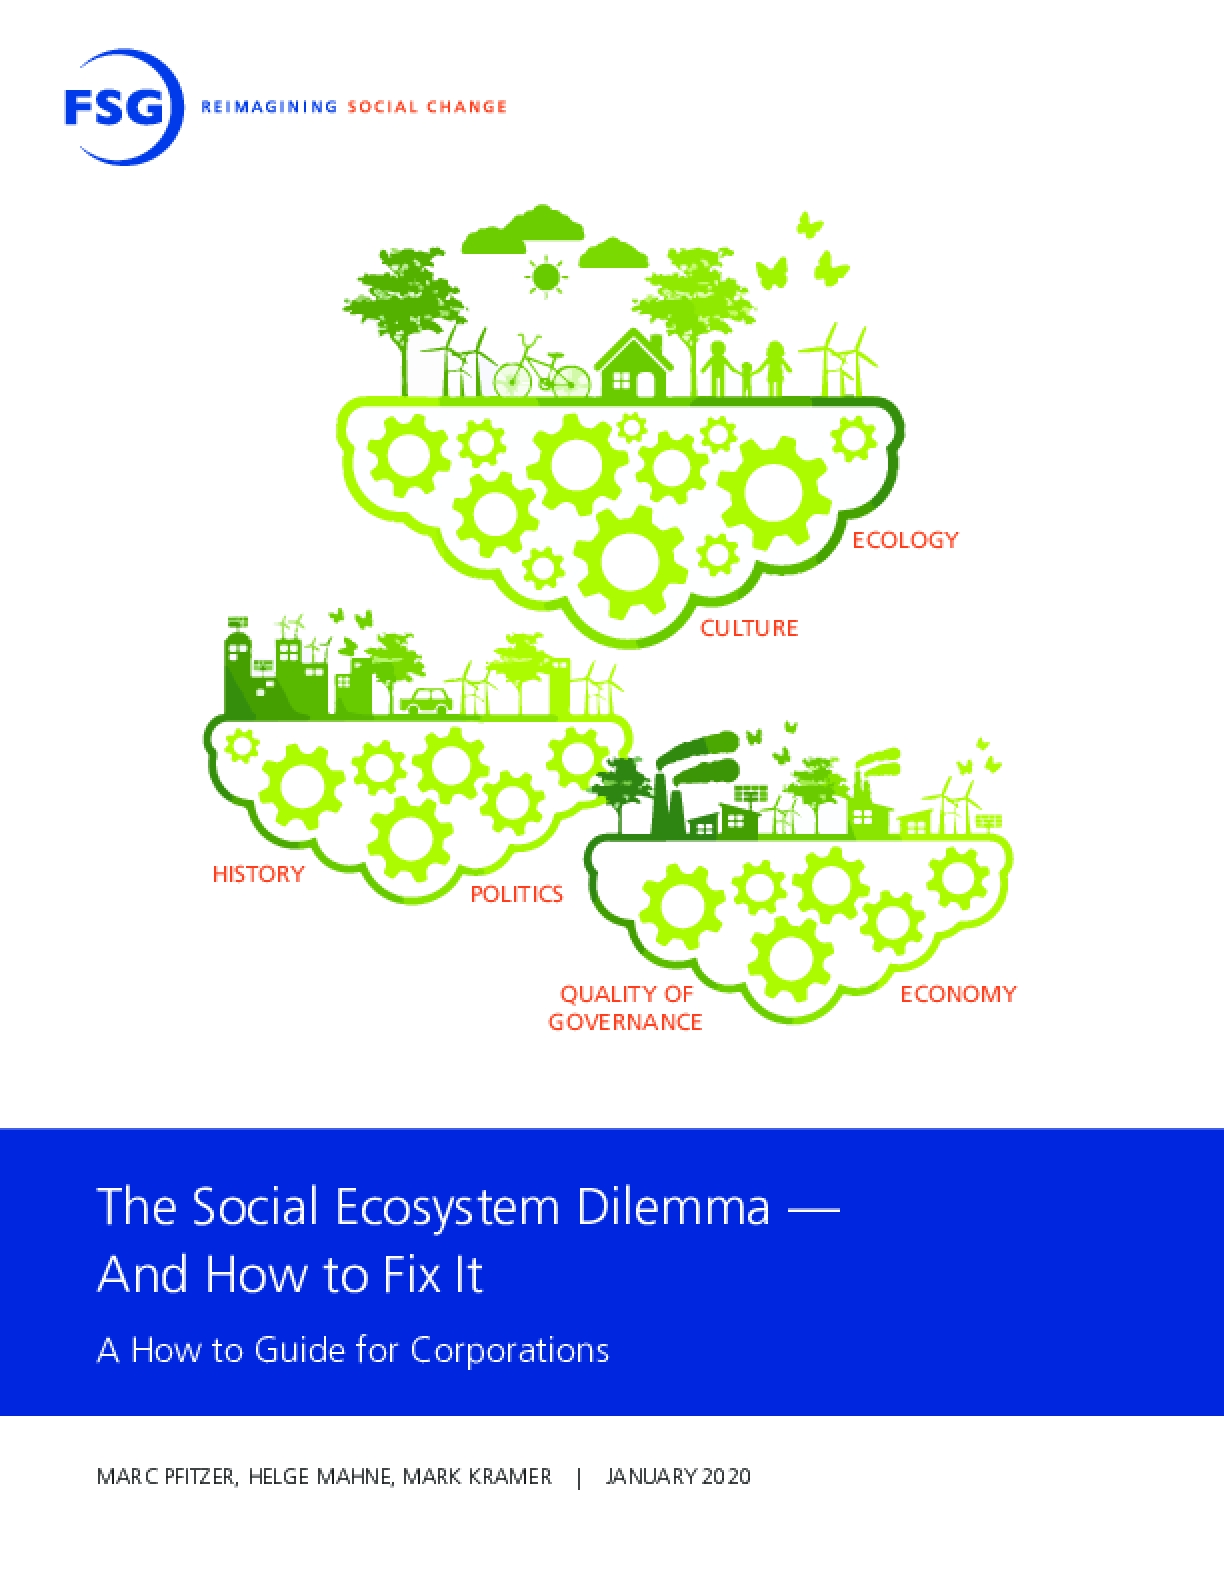 The Social Ecosystem Dilemma⁠ -- And How to Fix It